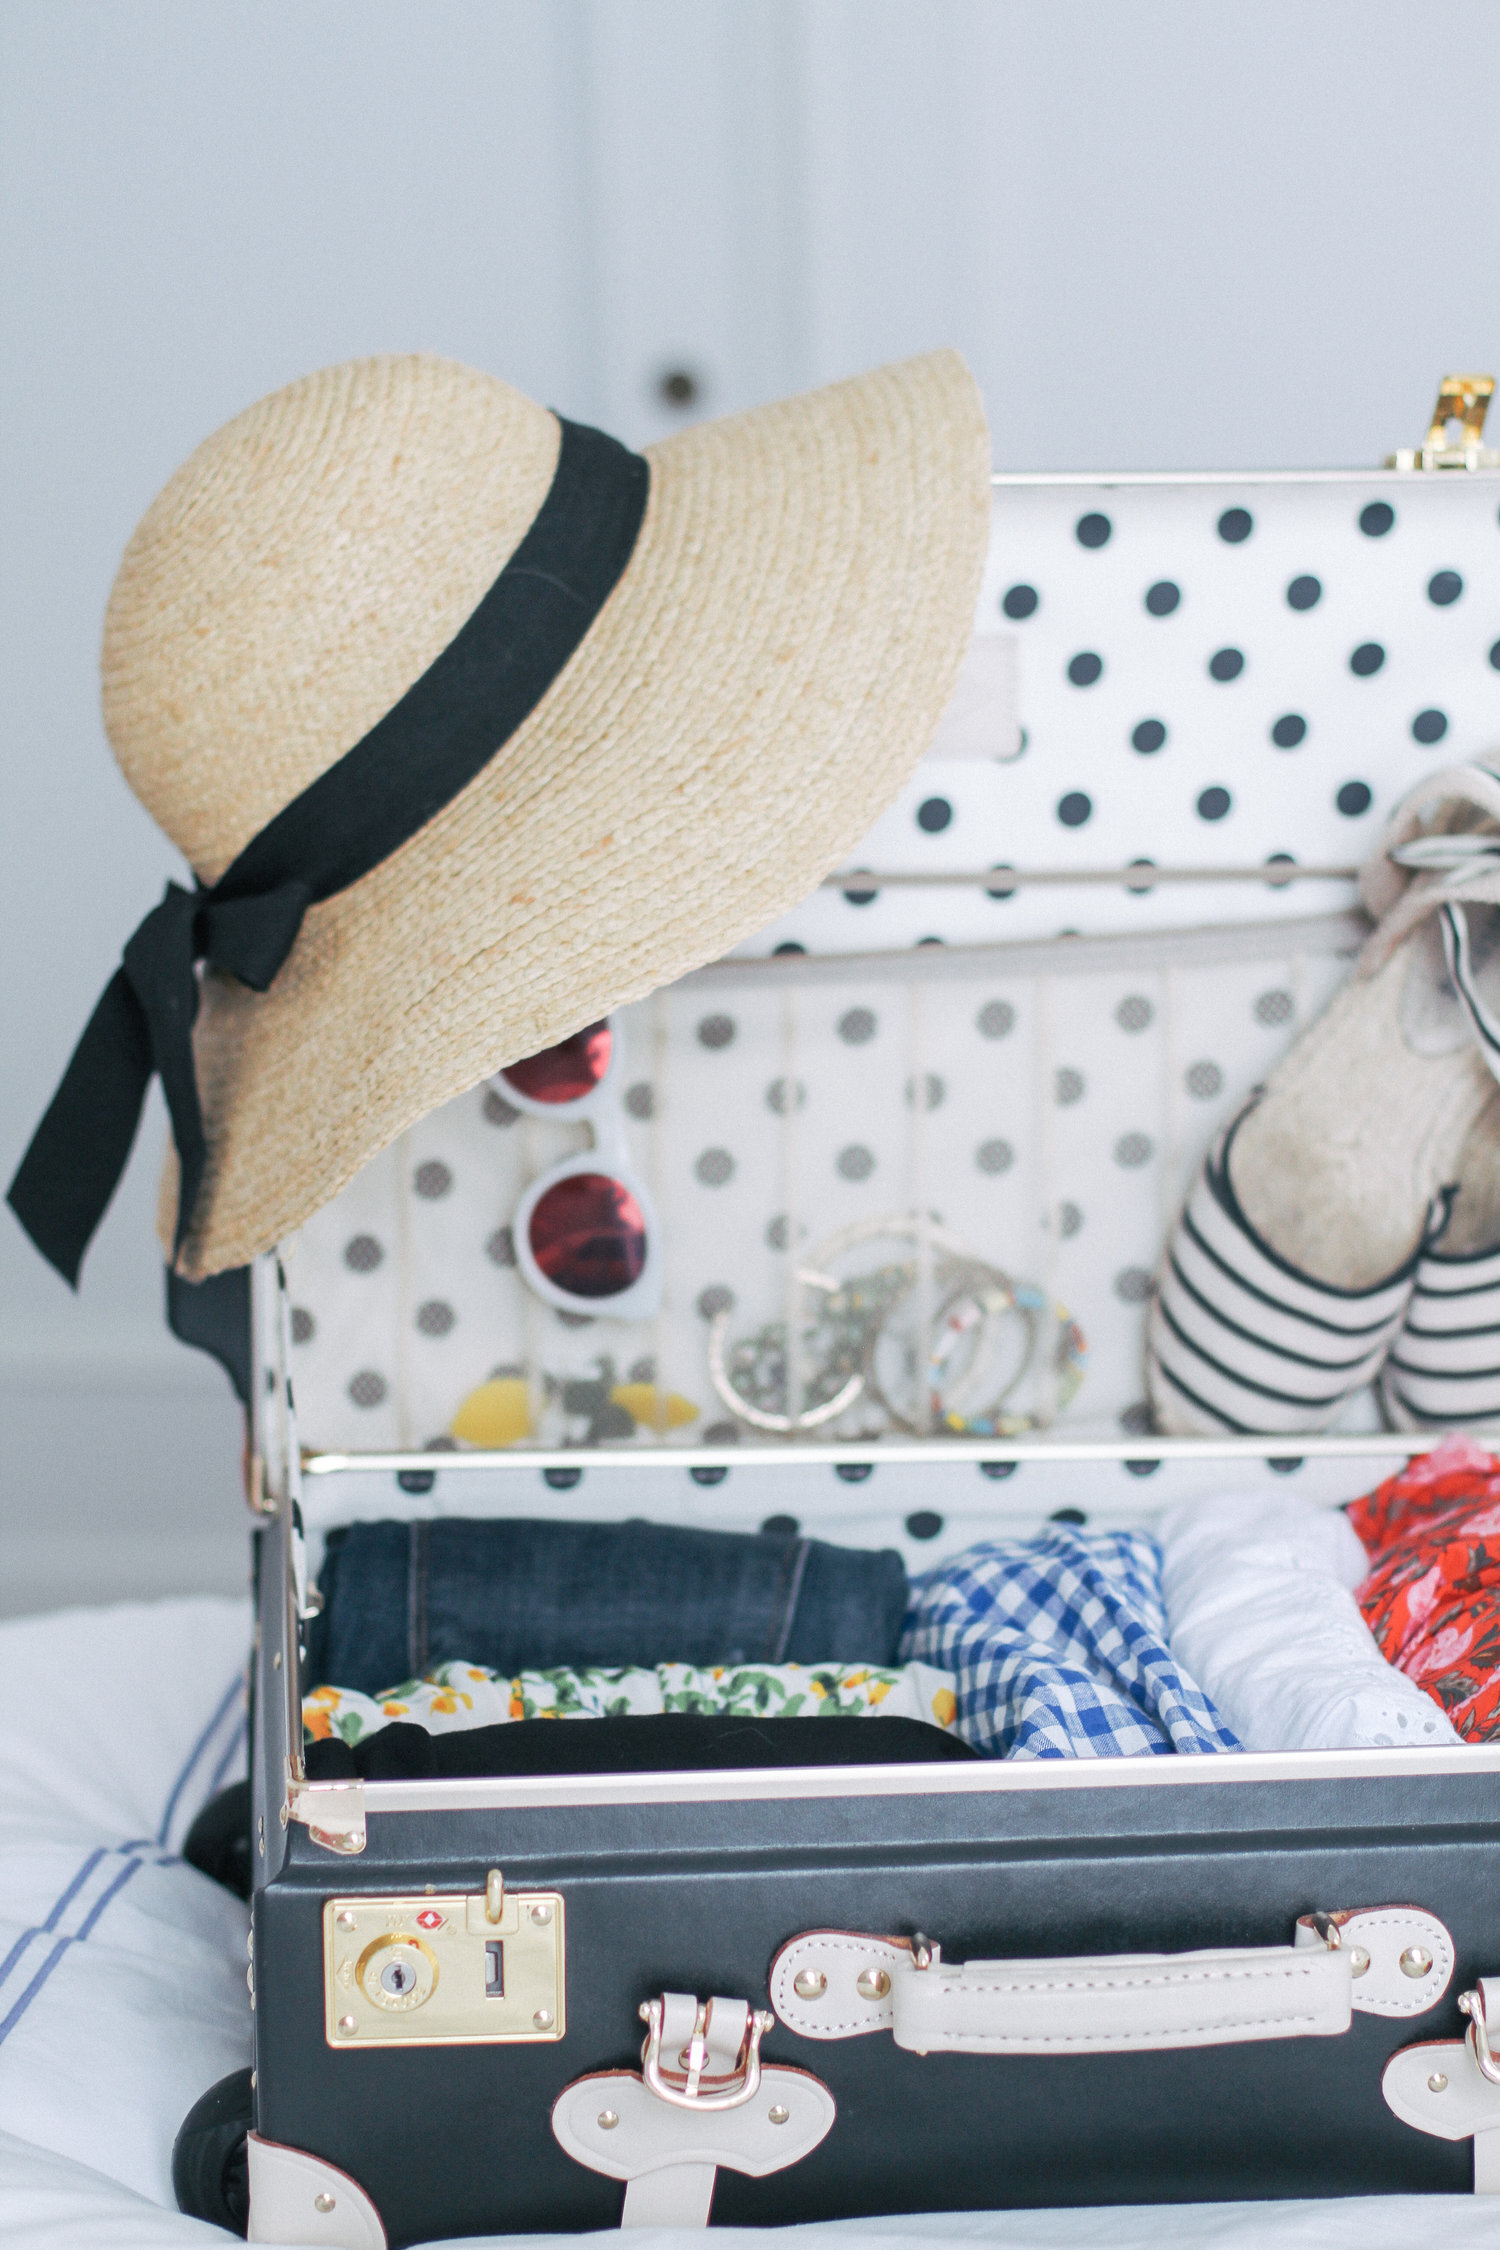 Steamline-Starlet-Carry-On-Packing | Monica Francis Reviews the SteamLine Luggage's Starlet Collection